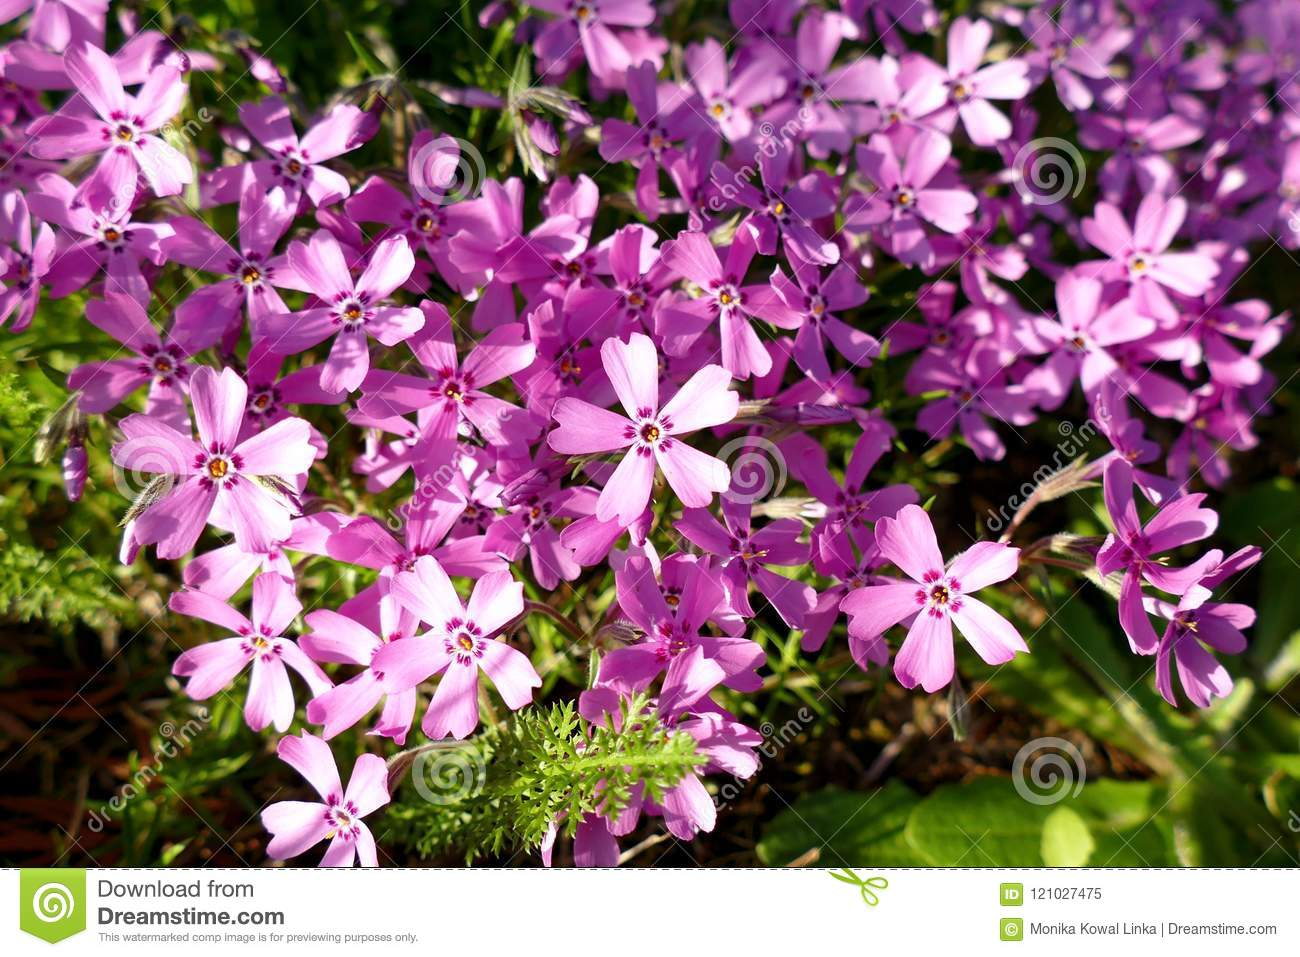 Background with numerous small pink moss phlox flowers 09 stock background with numerous small pink moss phlox flowers 09 mightylinksfo